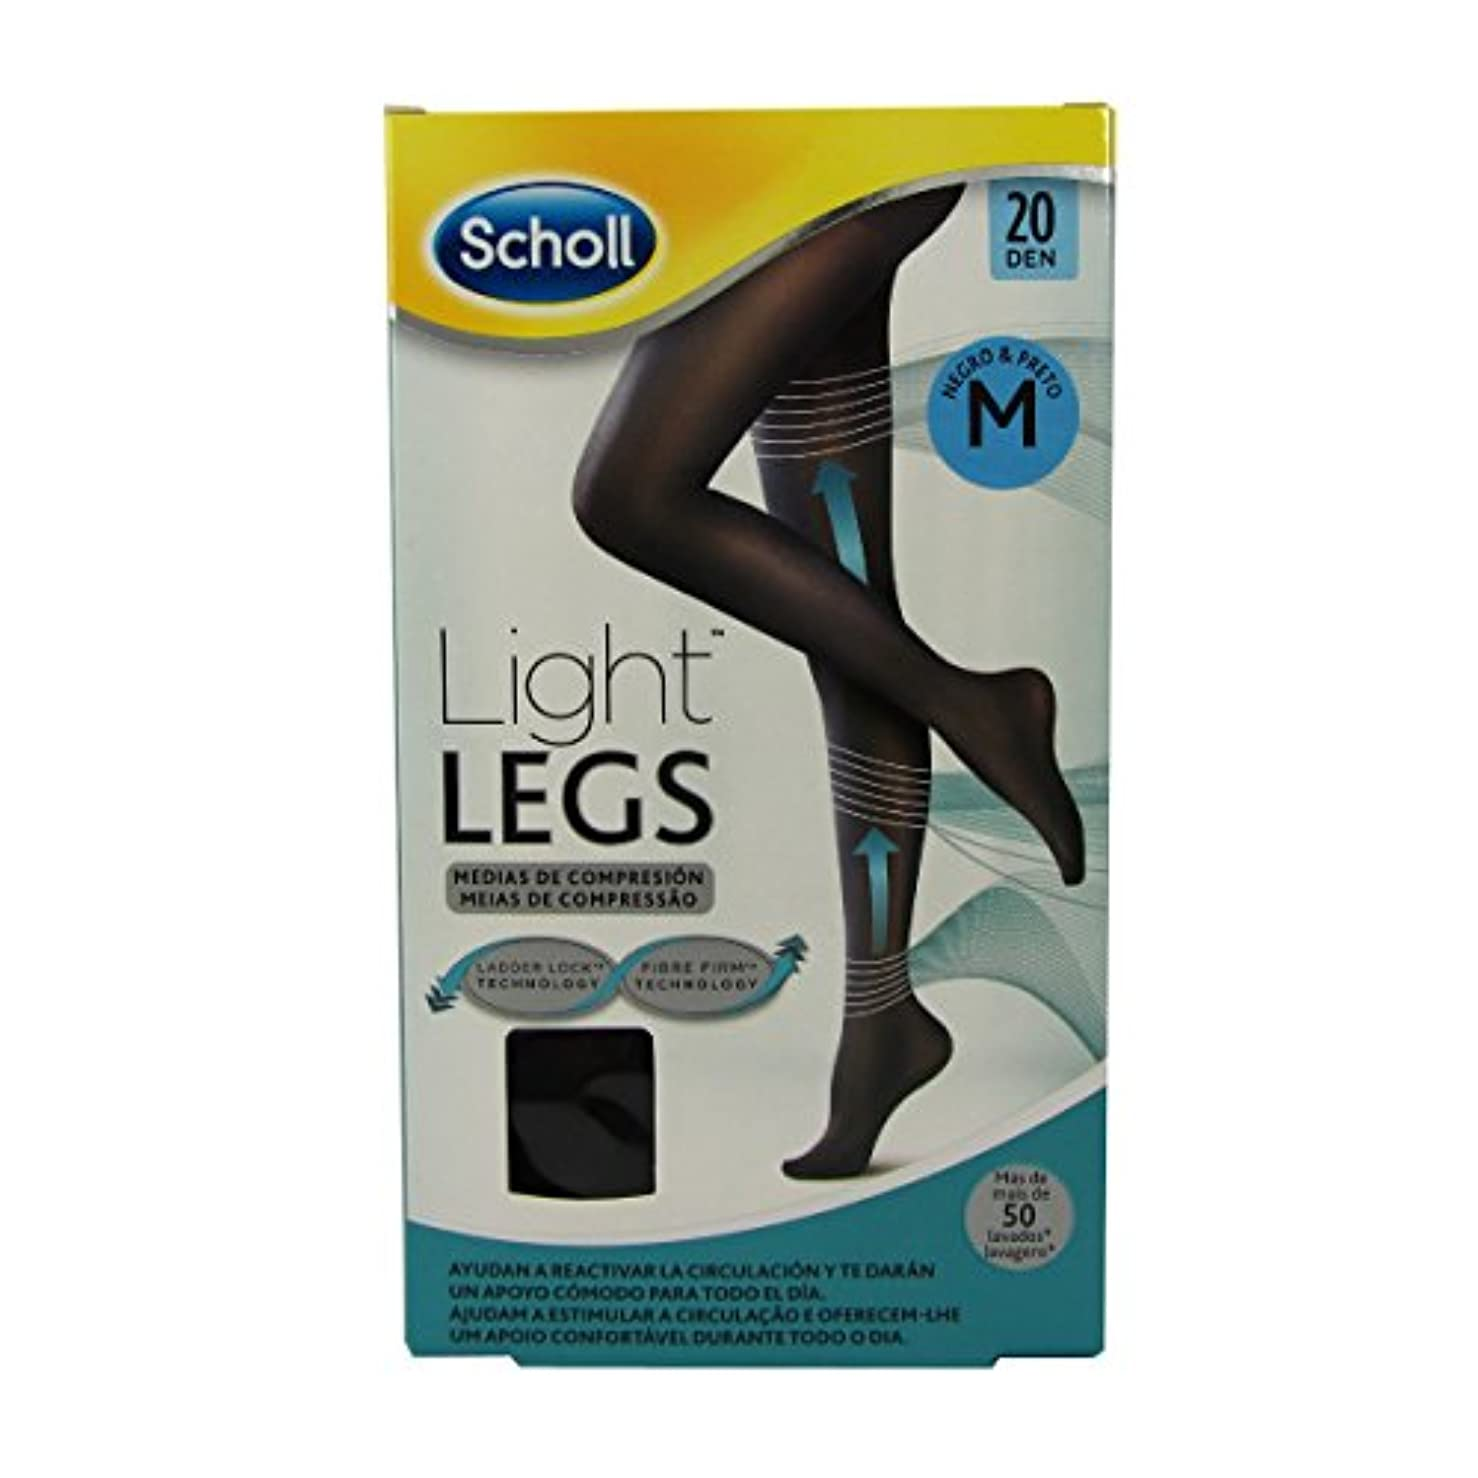 Scholl Light Legs Compression Tights 20den Black Medium [並行輸入品]